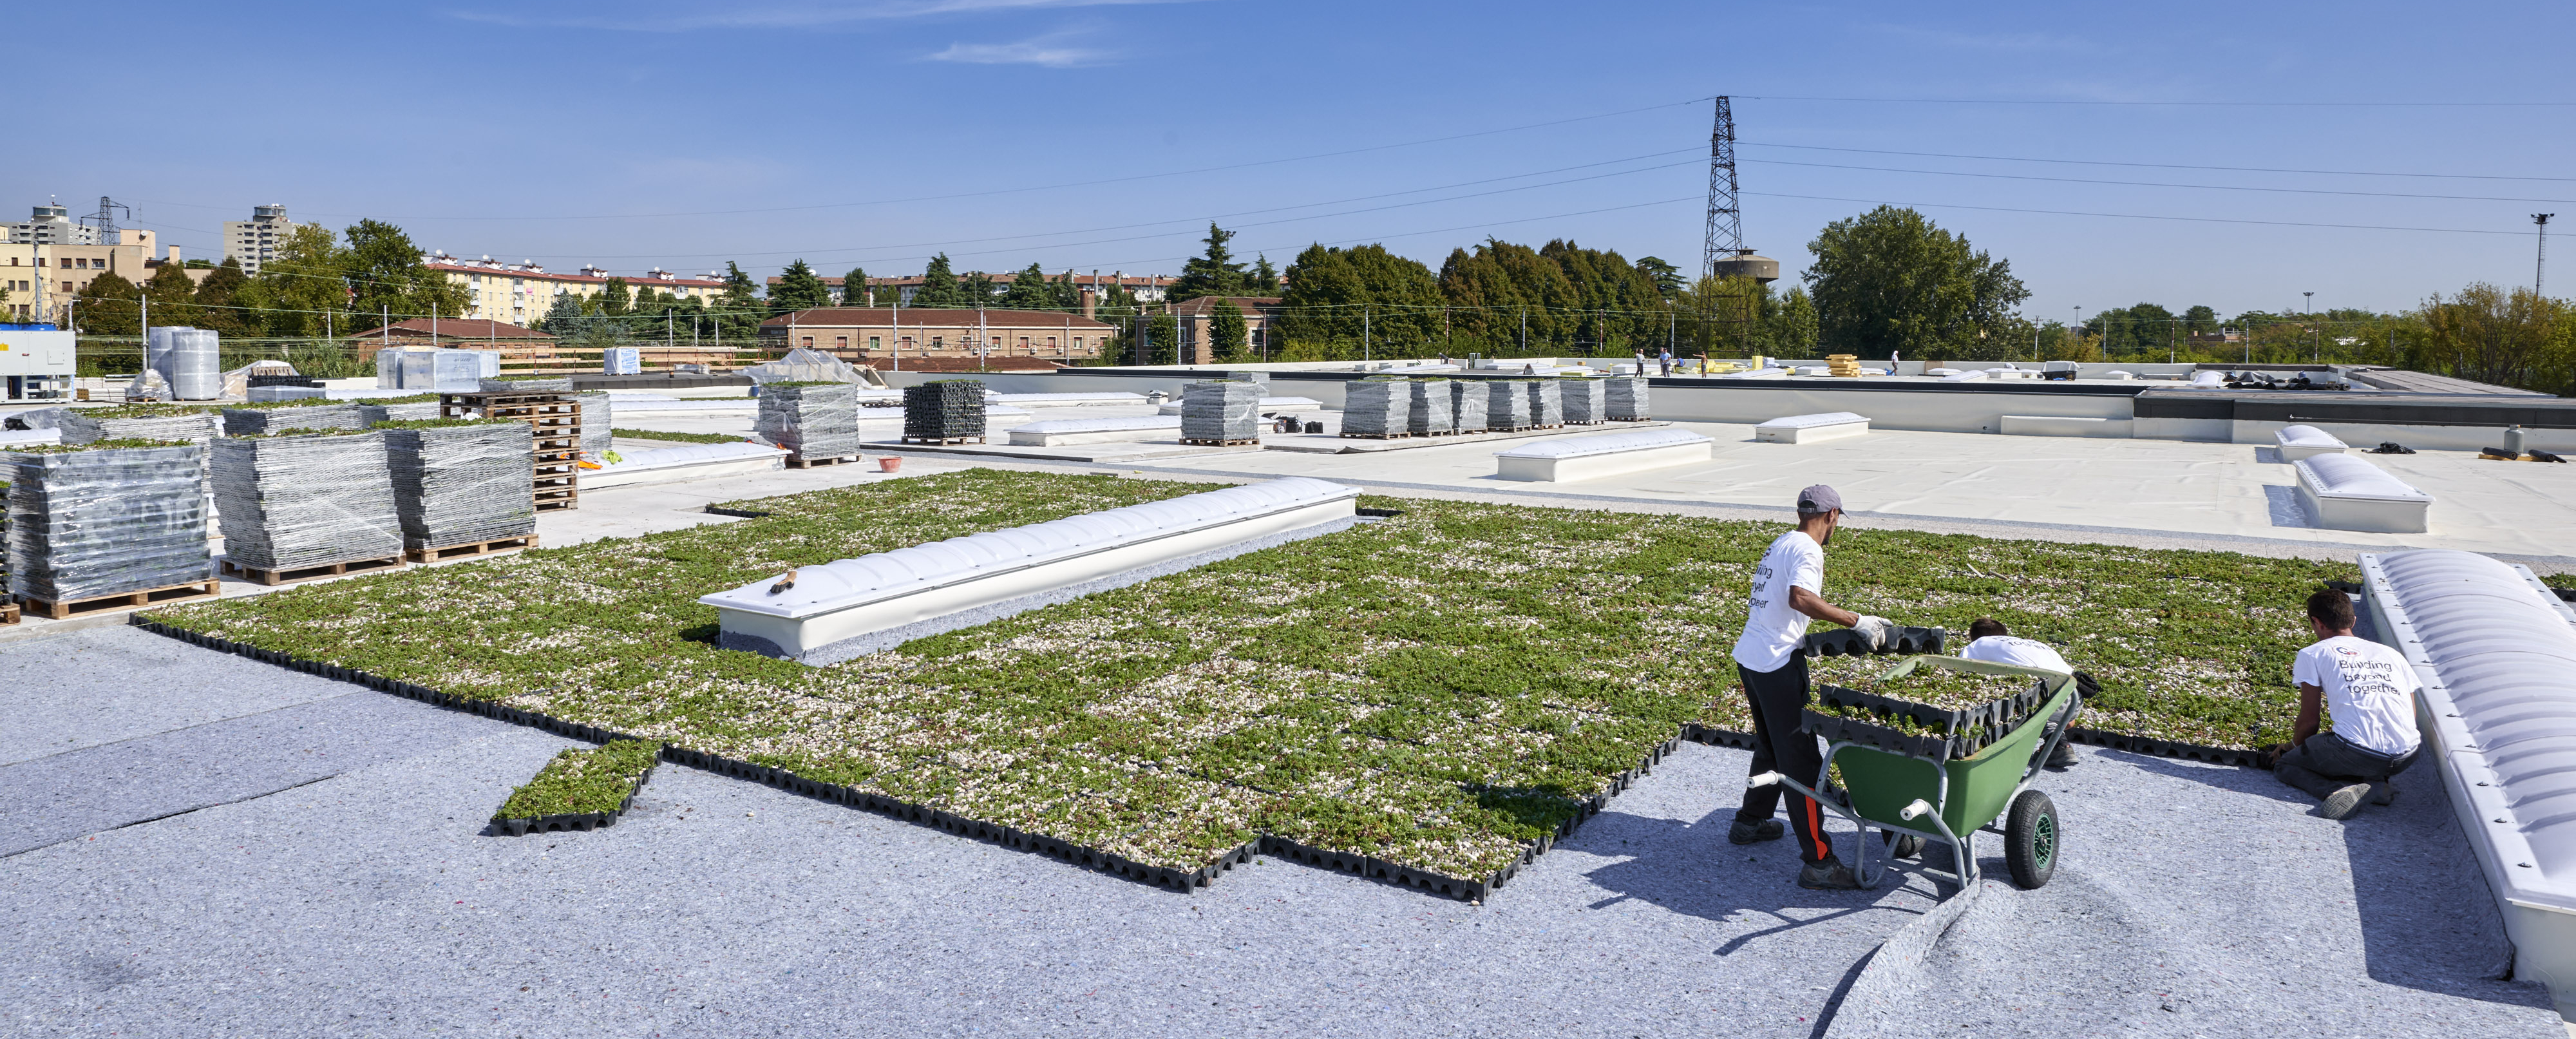 Geoplast Project Completa Despar Supermarket Green Roof